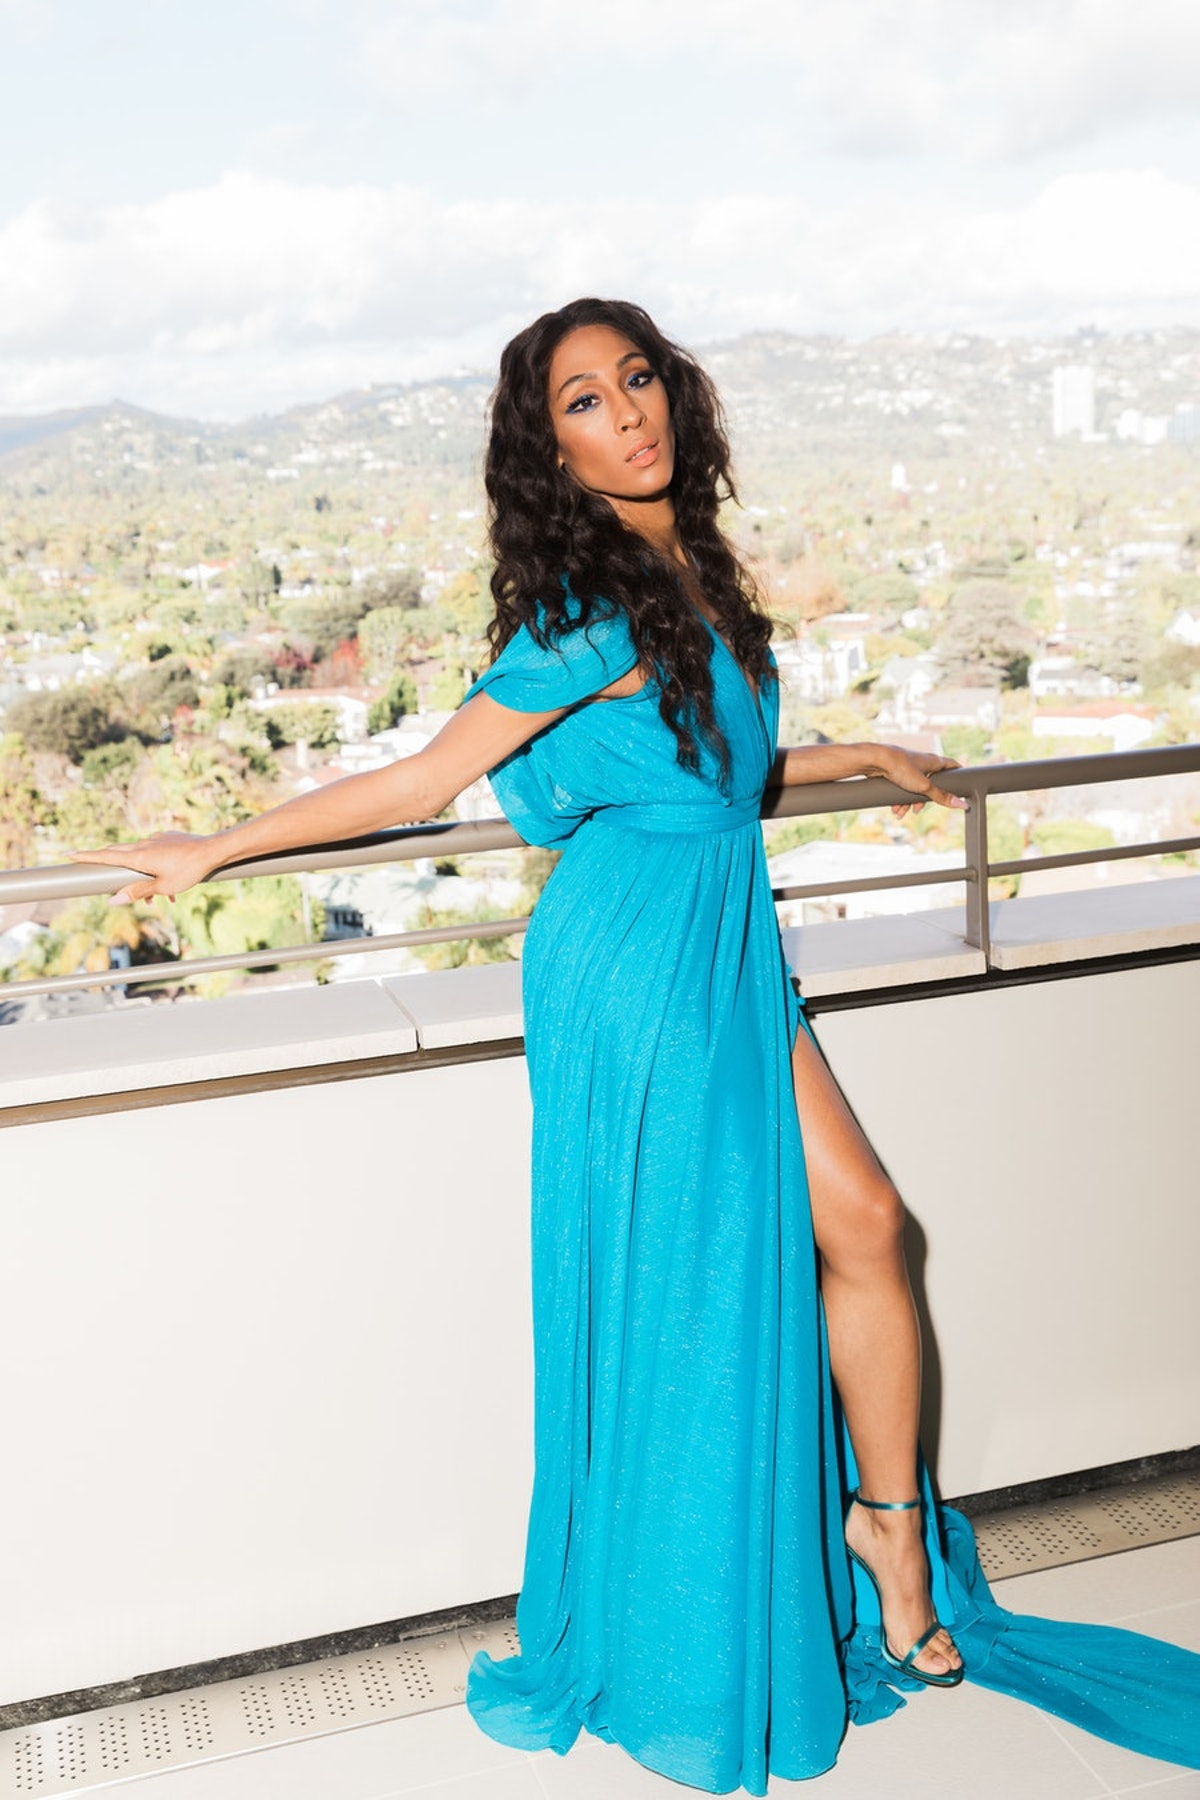 Mj Rodriguez, now an historic Emmy nominee